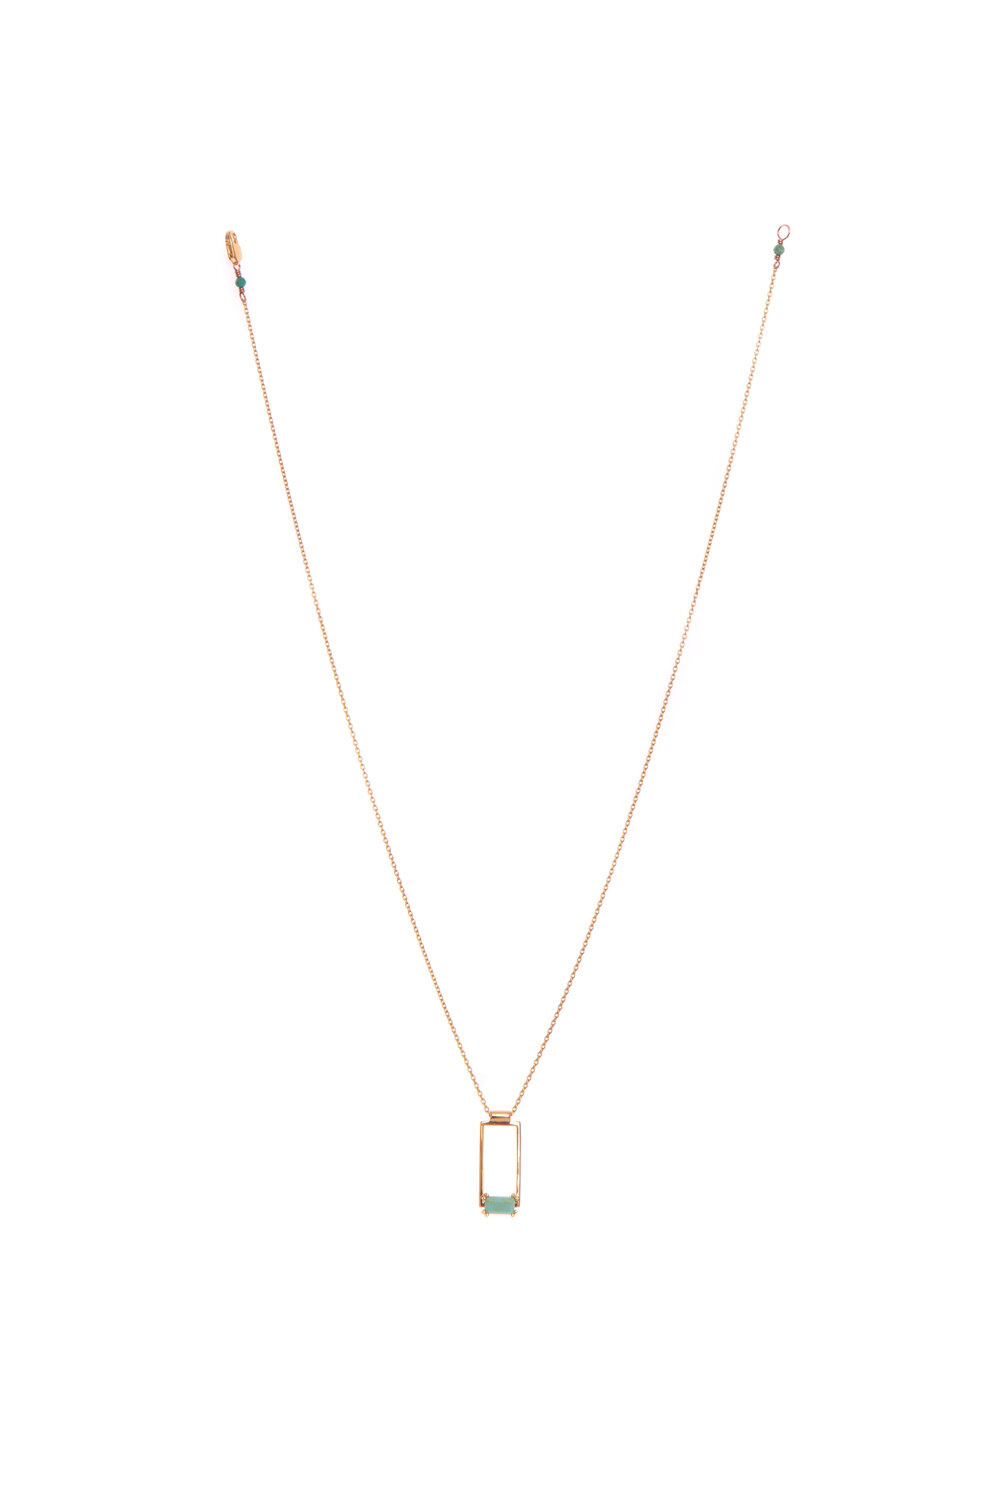 Hailey Gerrits Corsica Necklace- Green Turquoise